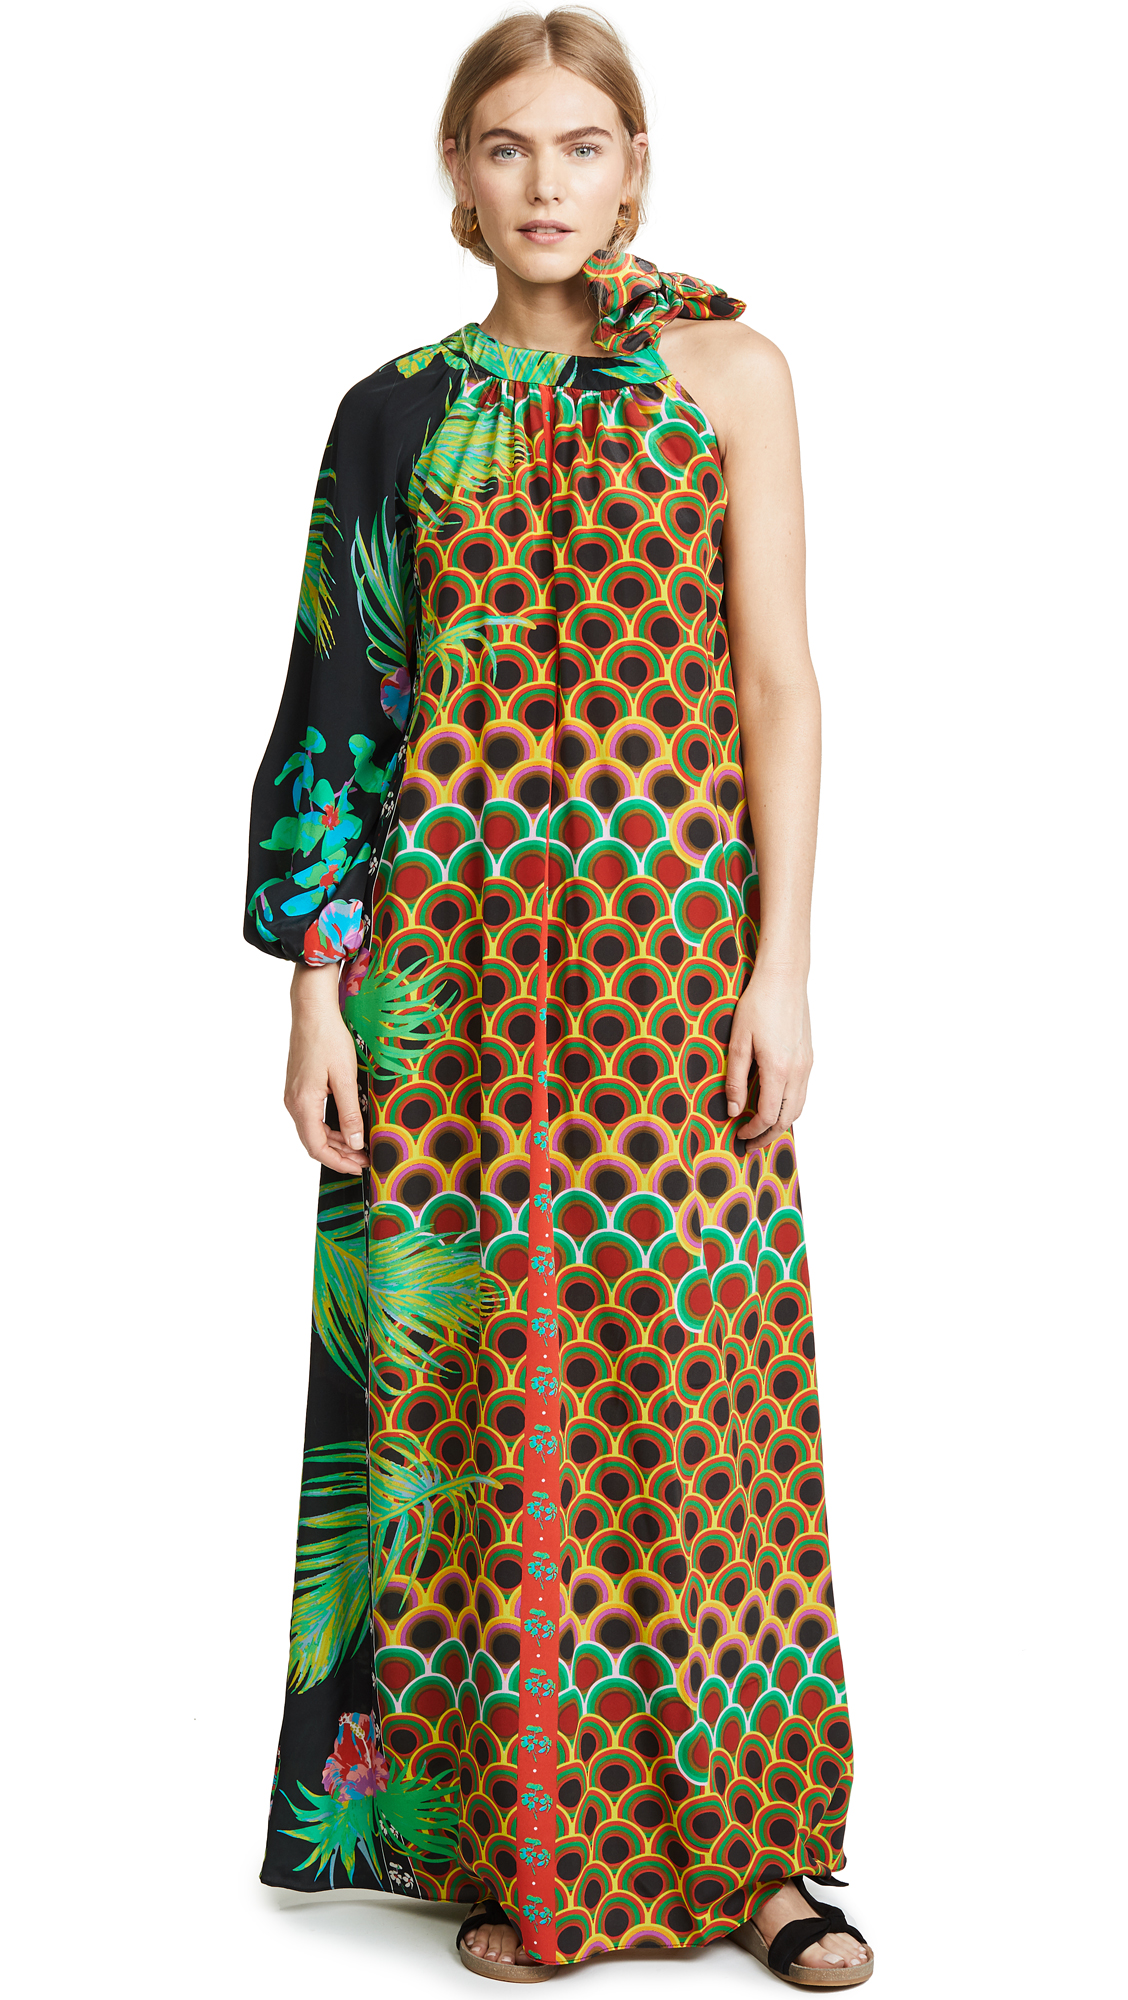 Cynthia Rowley Offshore One Sleeve Dress In Jungle Paradise